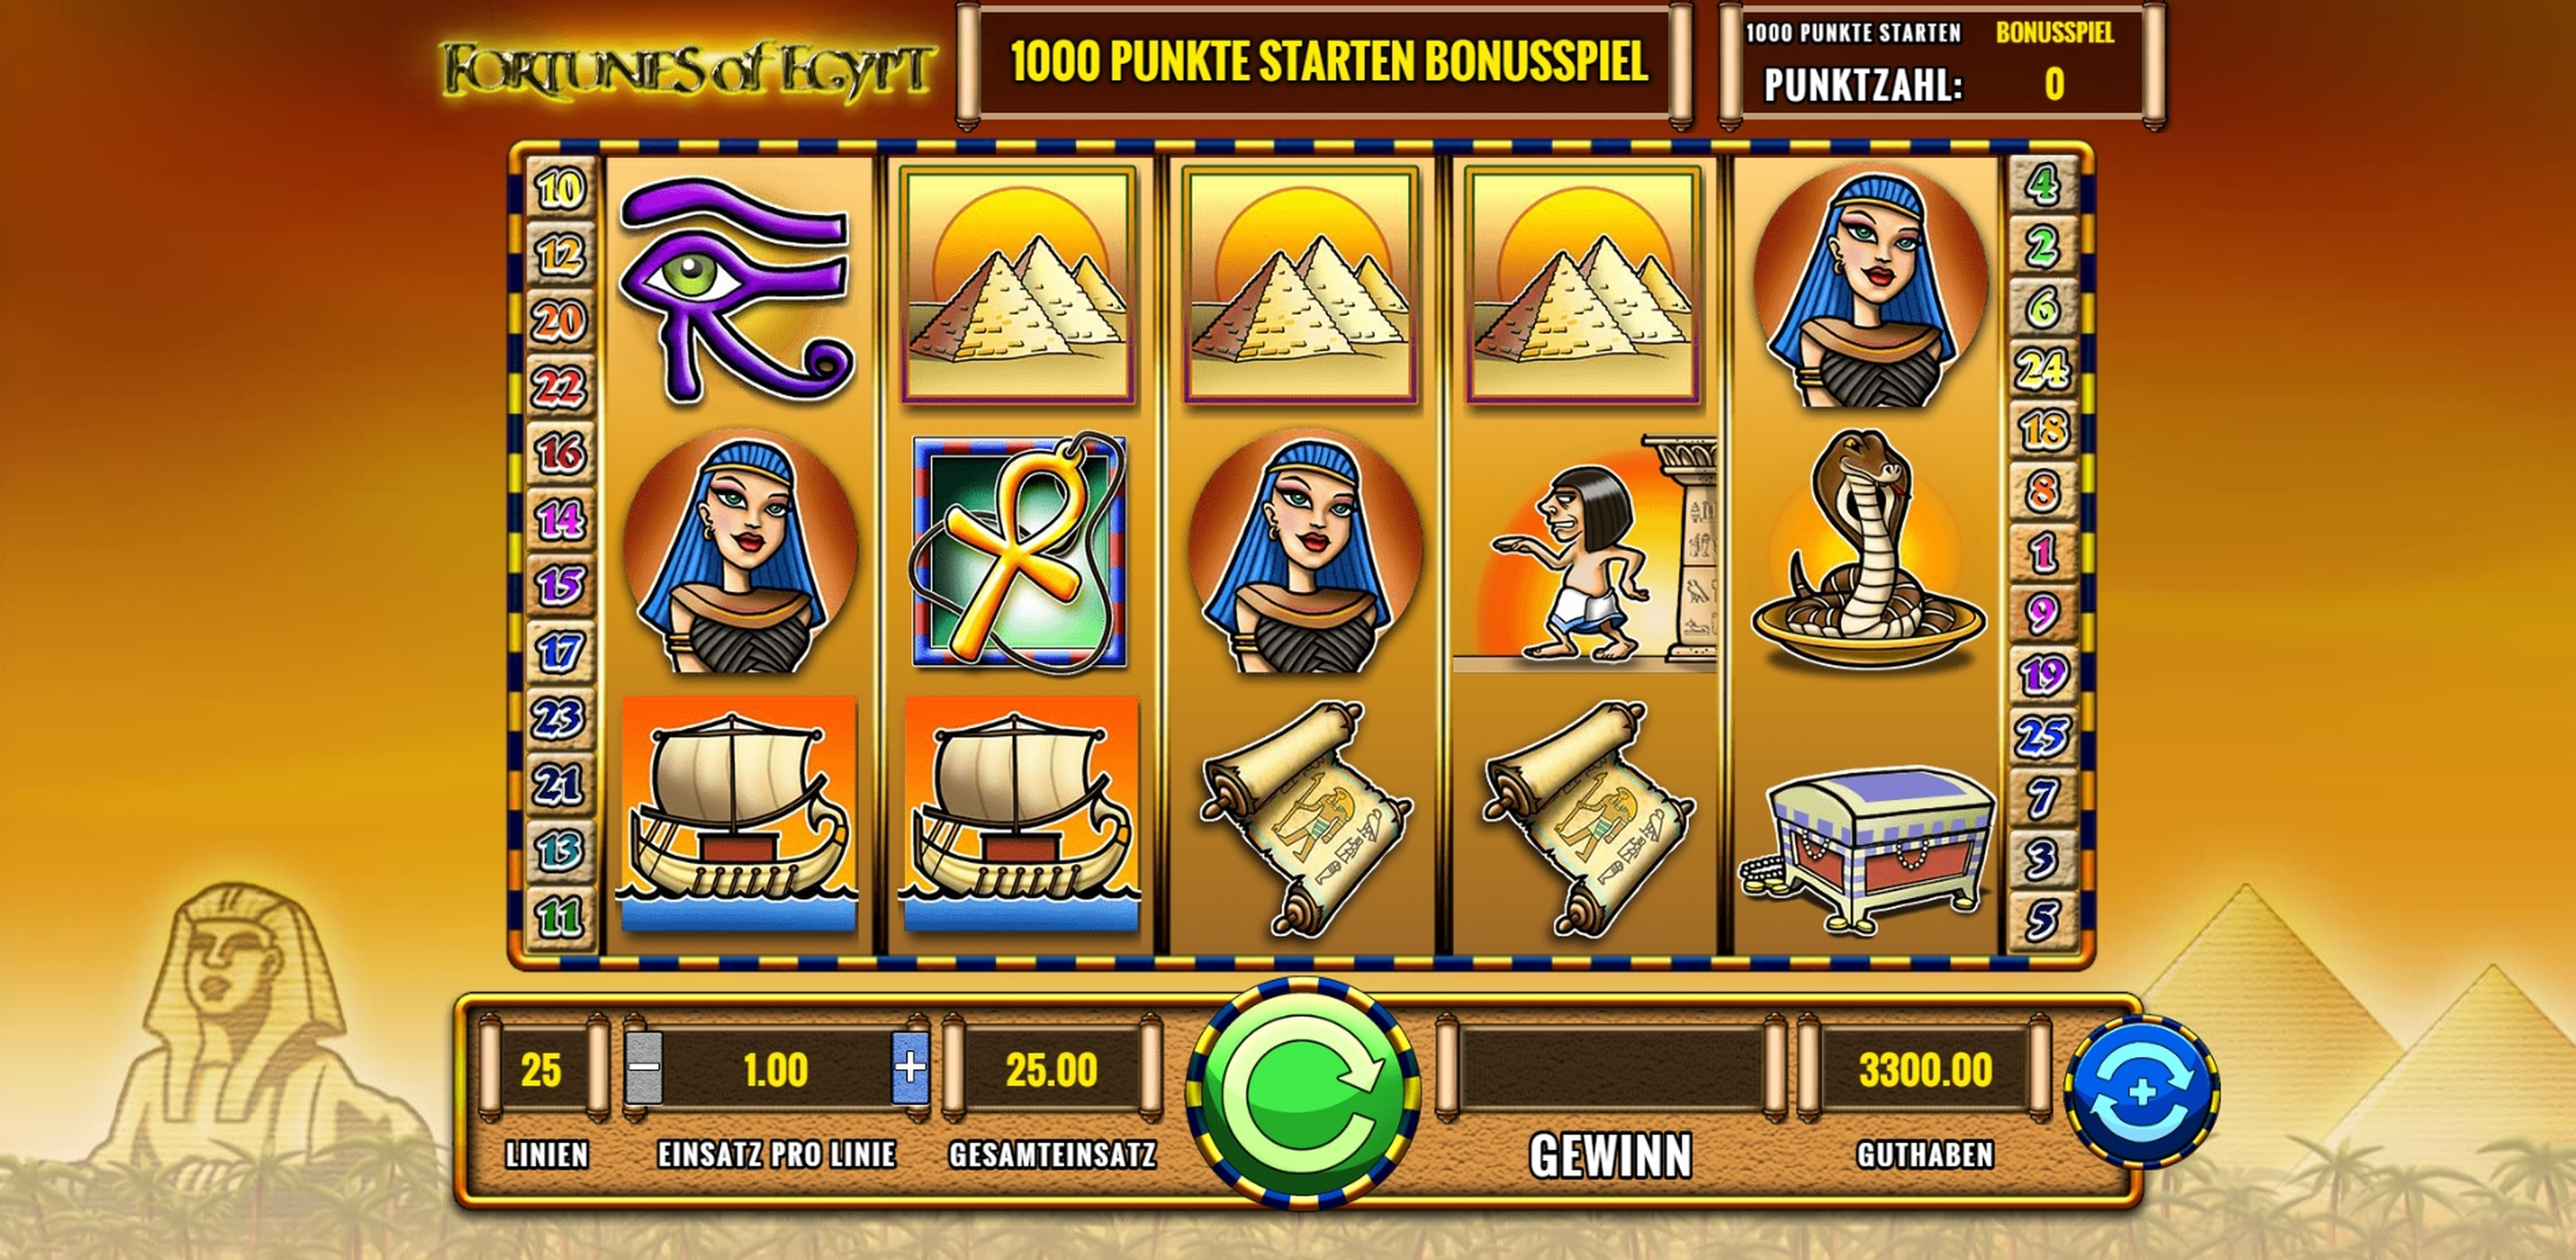 Reels in Fortunes of Egypt Slot Game by IGT